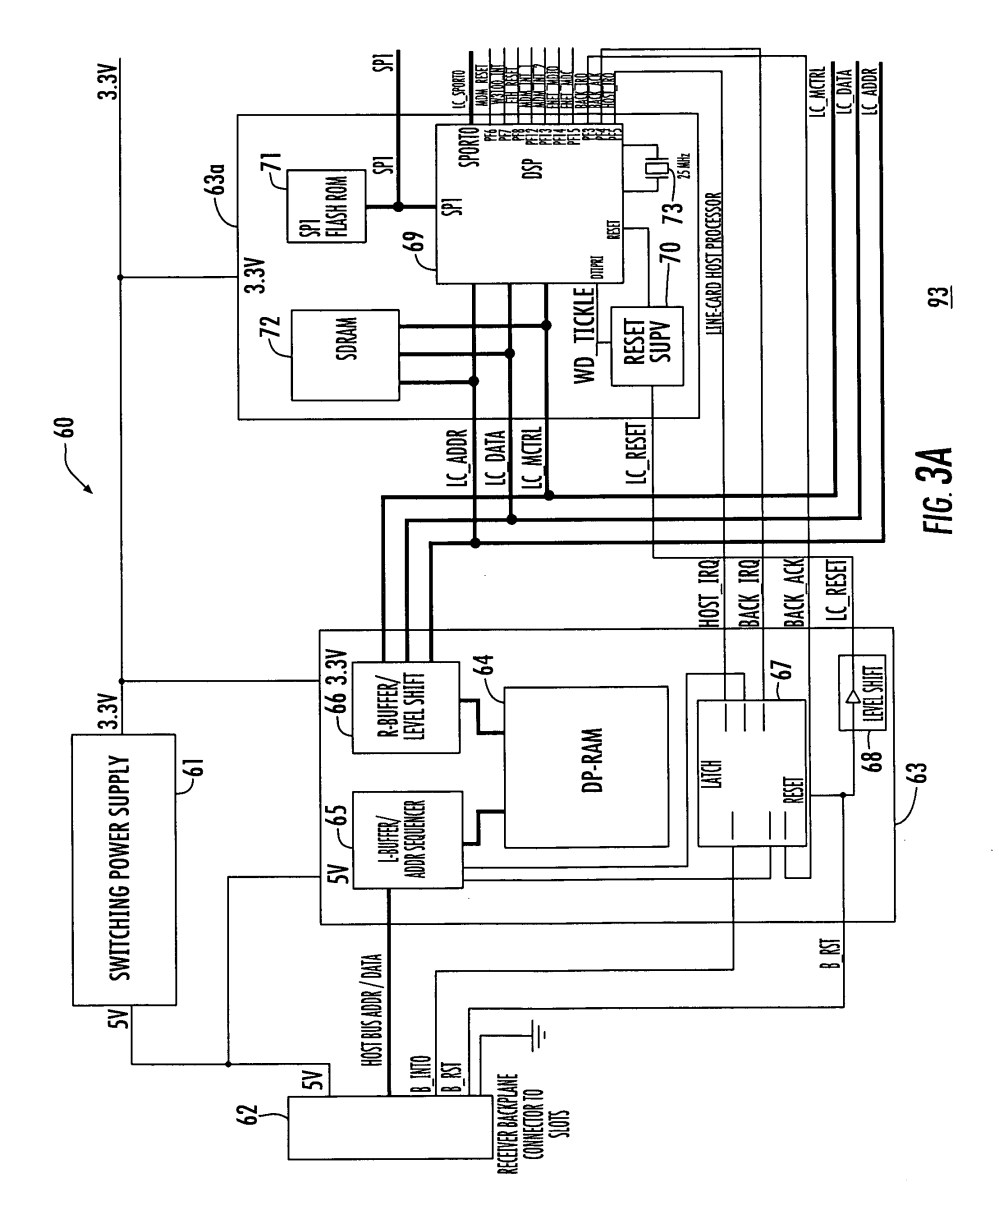 medium resolution of duct smoke detector wiring diagram download smoke detector wiring diagram lovely fortable fire alarm circuit download wiring diagram